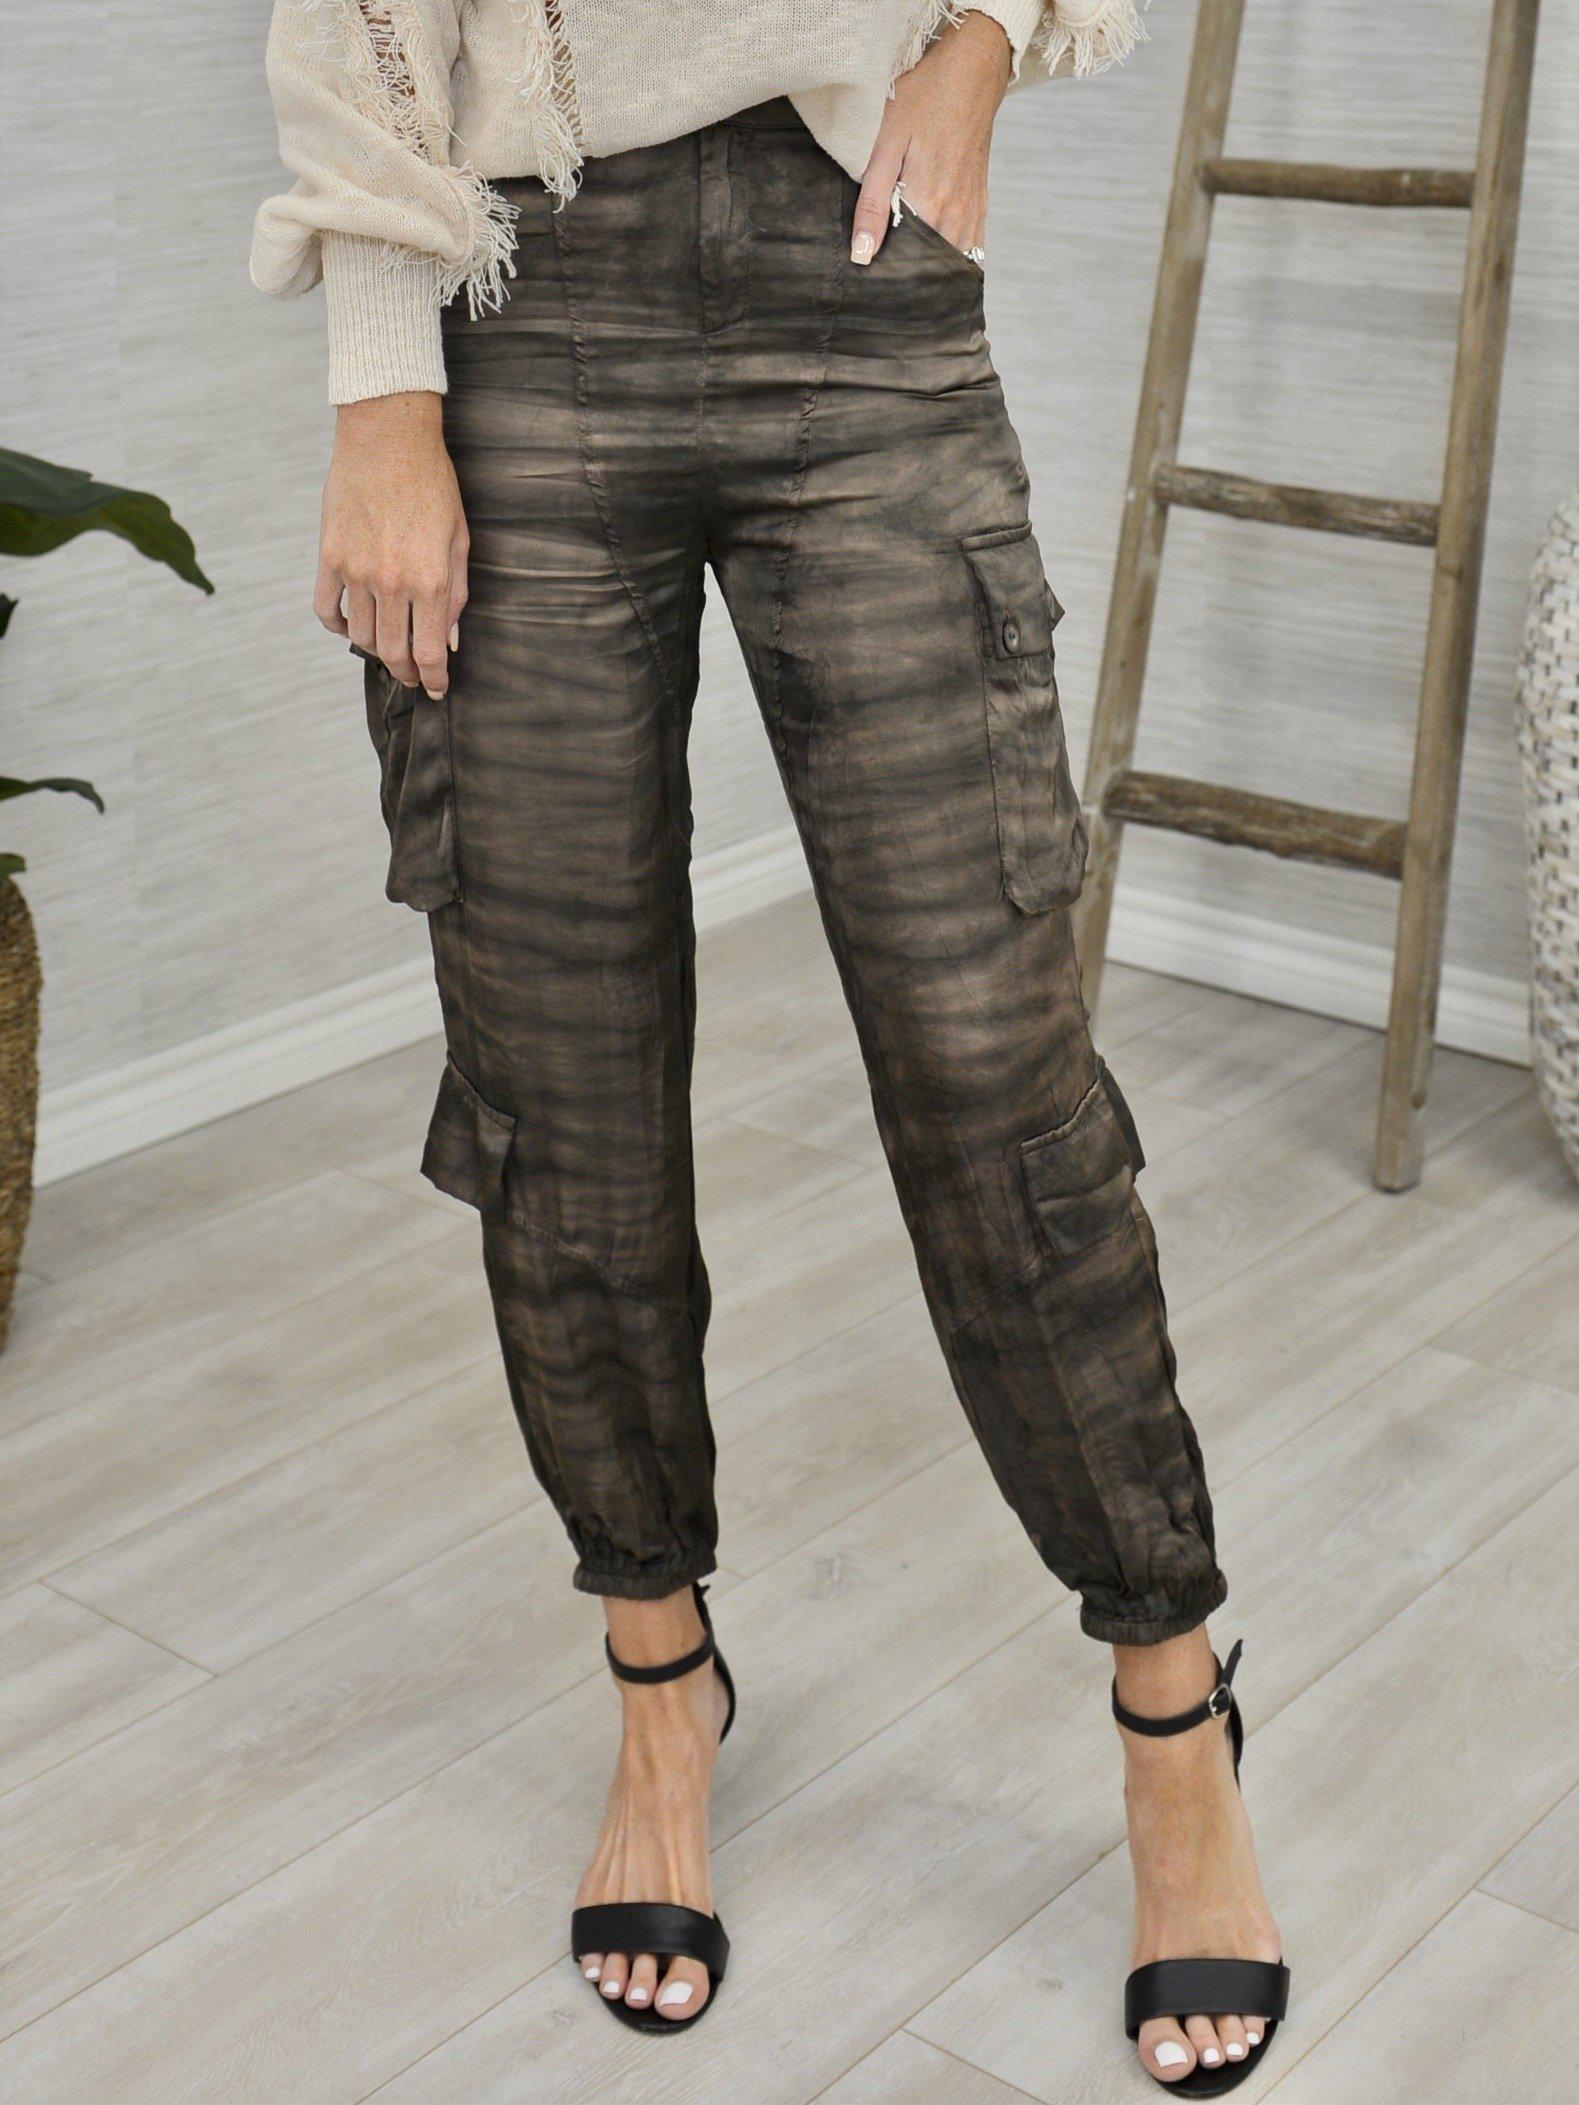 First Class Joggers-Women's -New Arrivals-Runway Seven